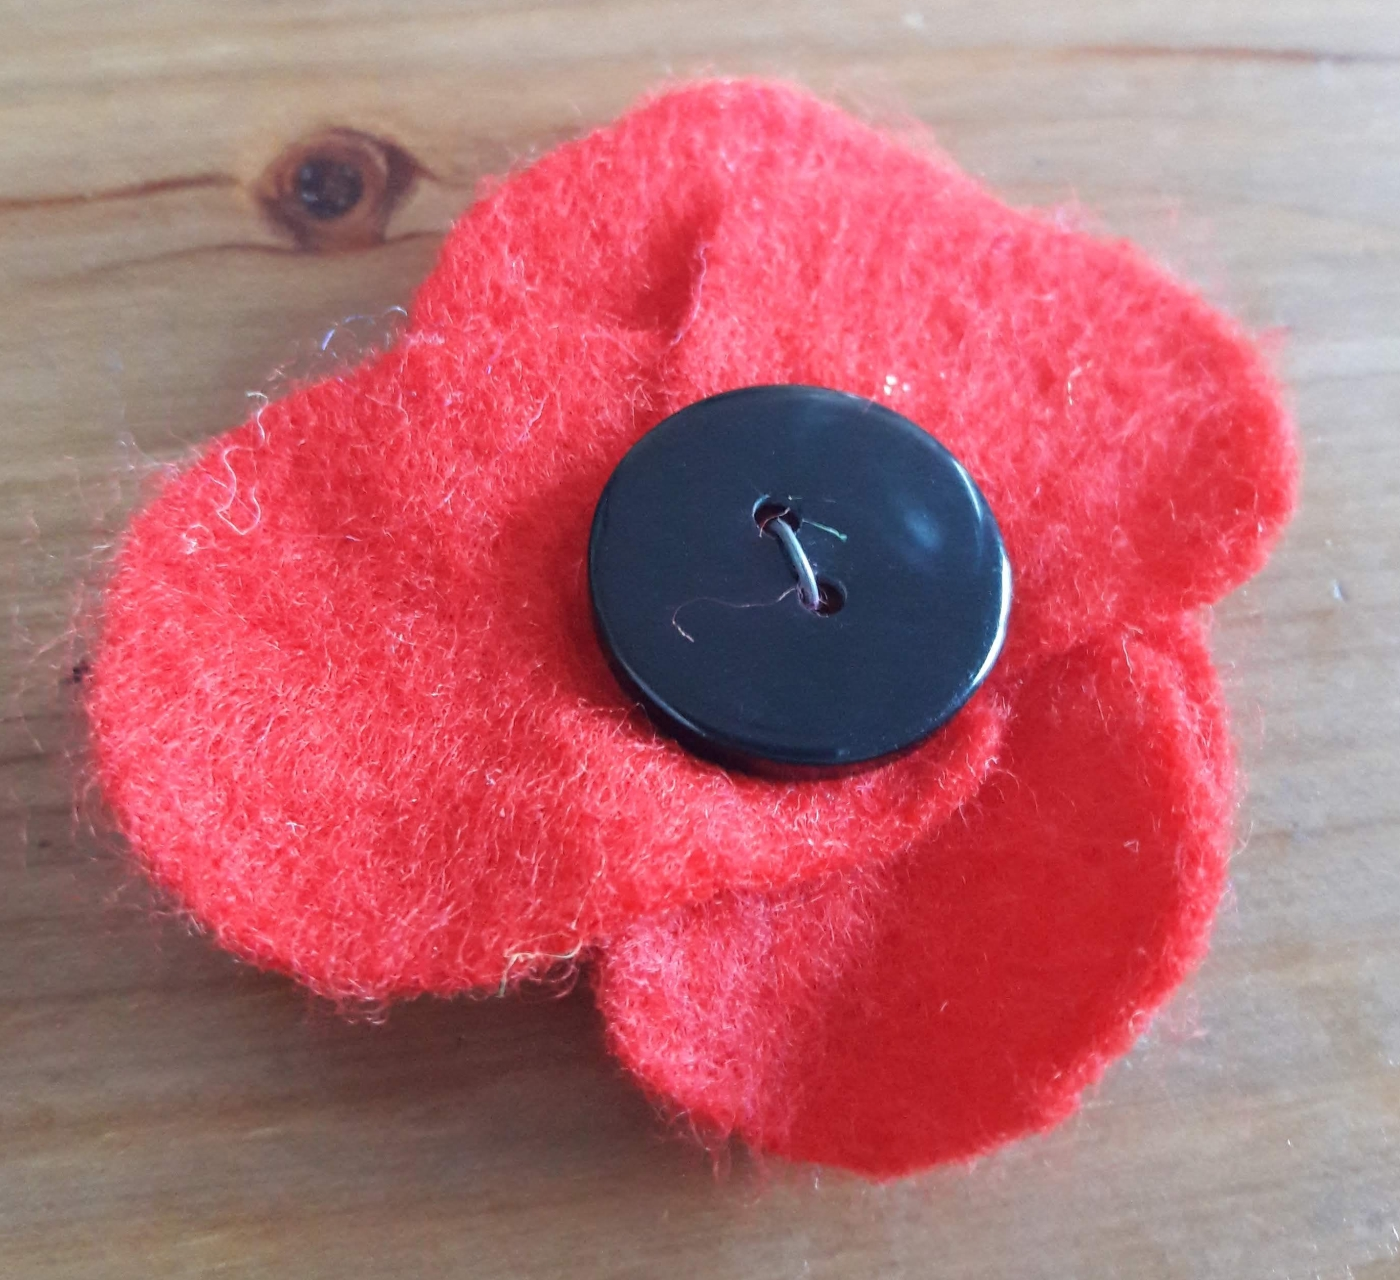 A homemade felt poppy.